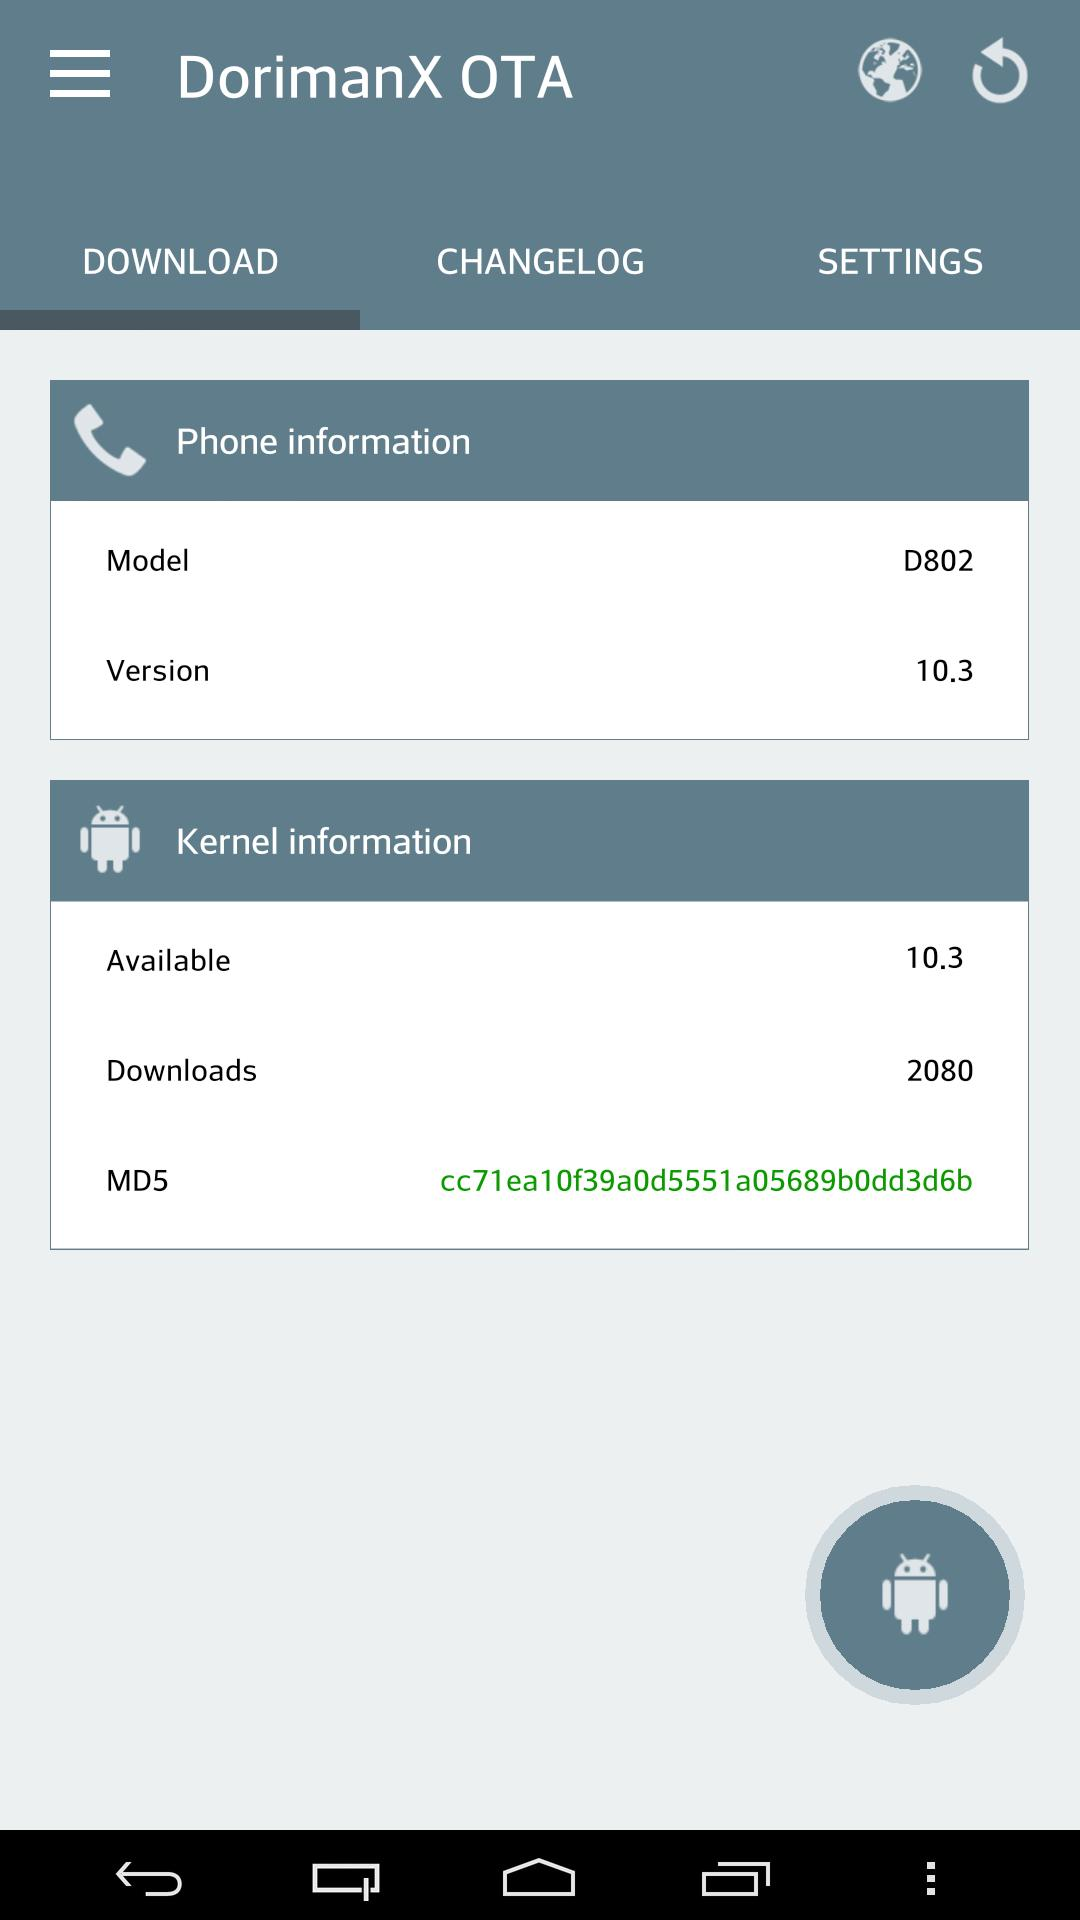 ROOT] DorimanX OTA LG-G2 FREE for Android - APK Download